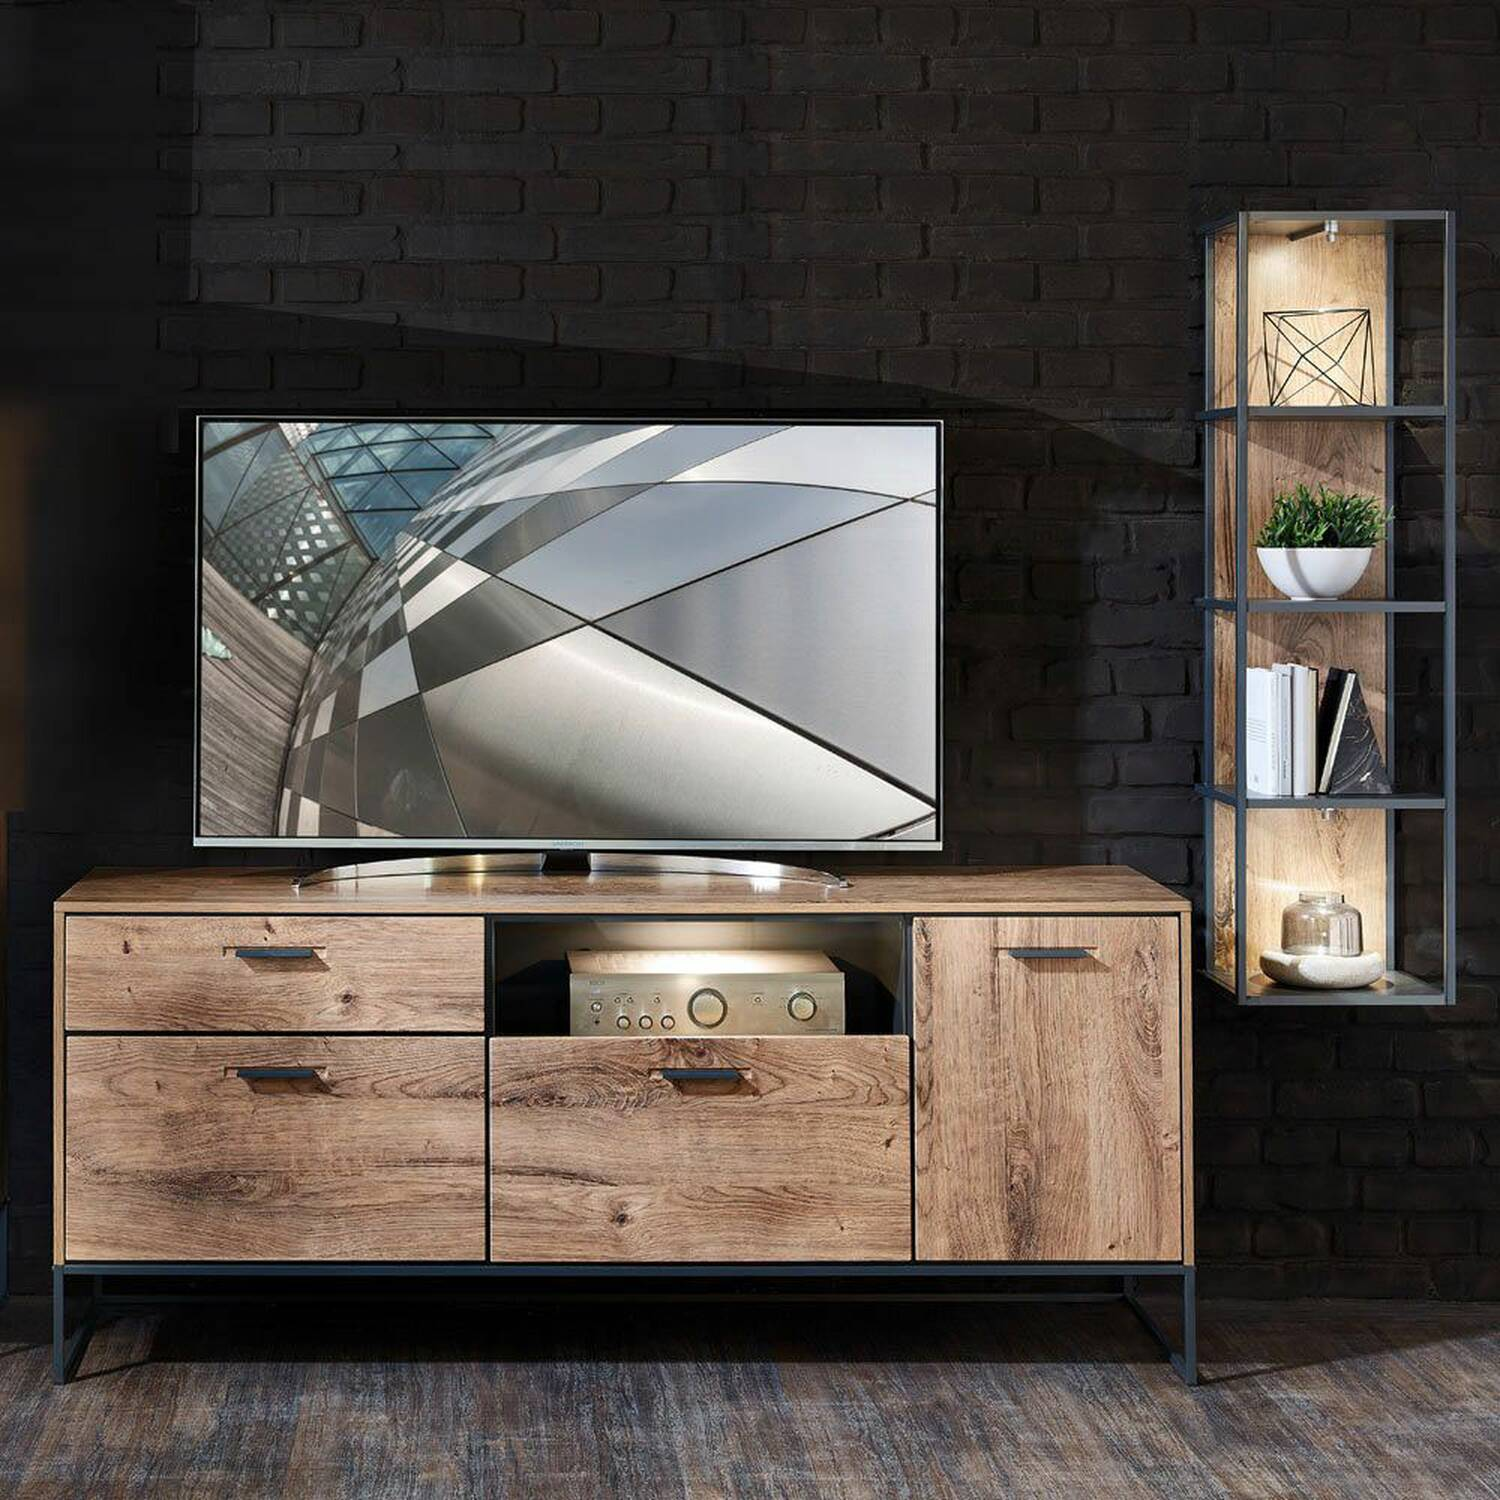 TV-Media Wohnwand MINNEAPOLIS-55 im Industrial-Design in Haveleiche Cognac mit Matera anthrazit, B/H/T ca: 240/165/48 cm